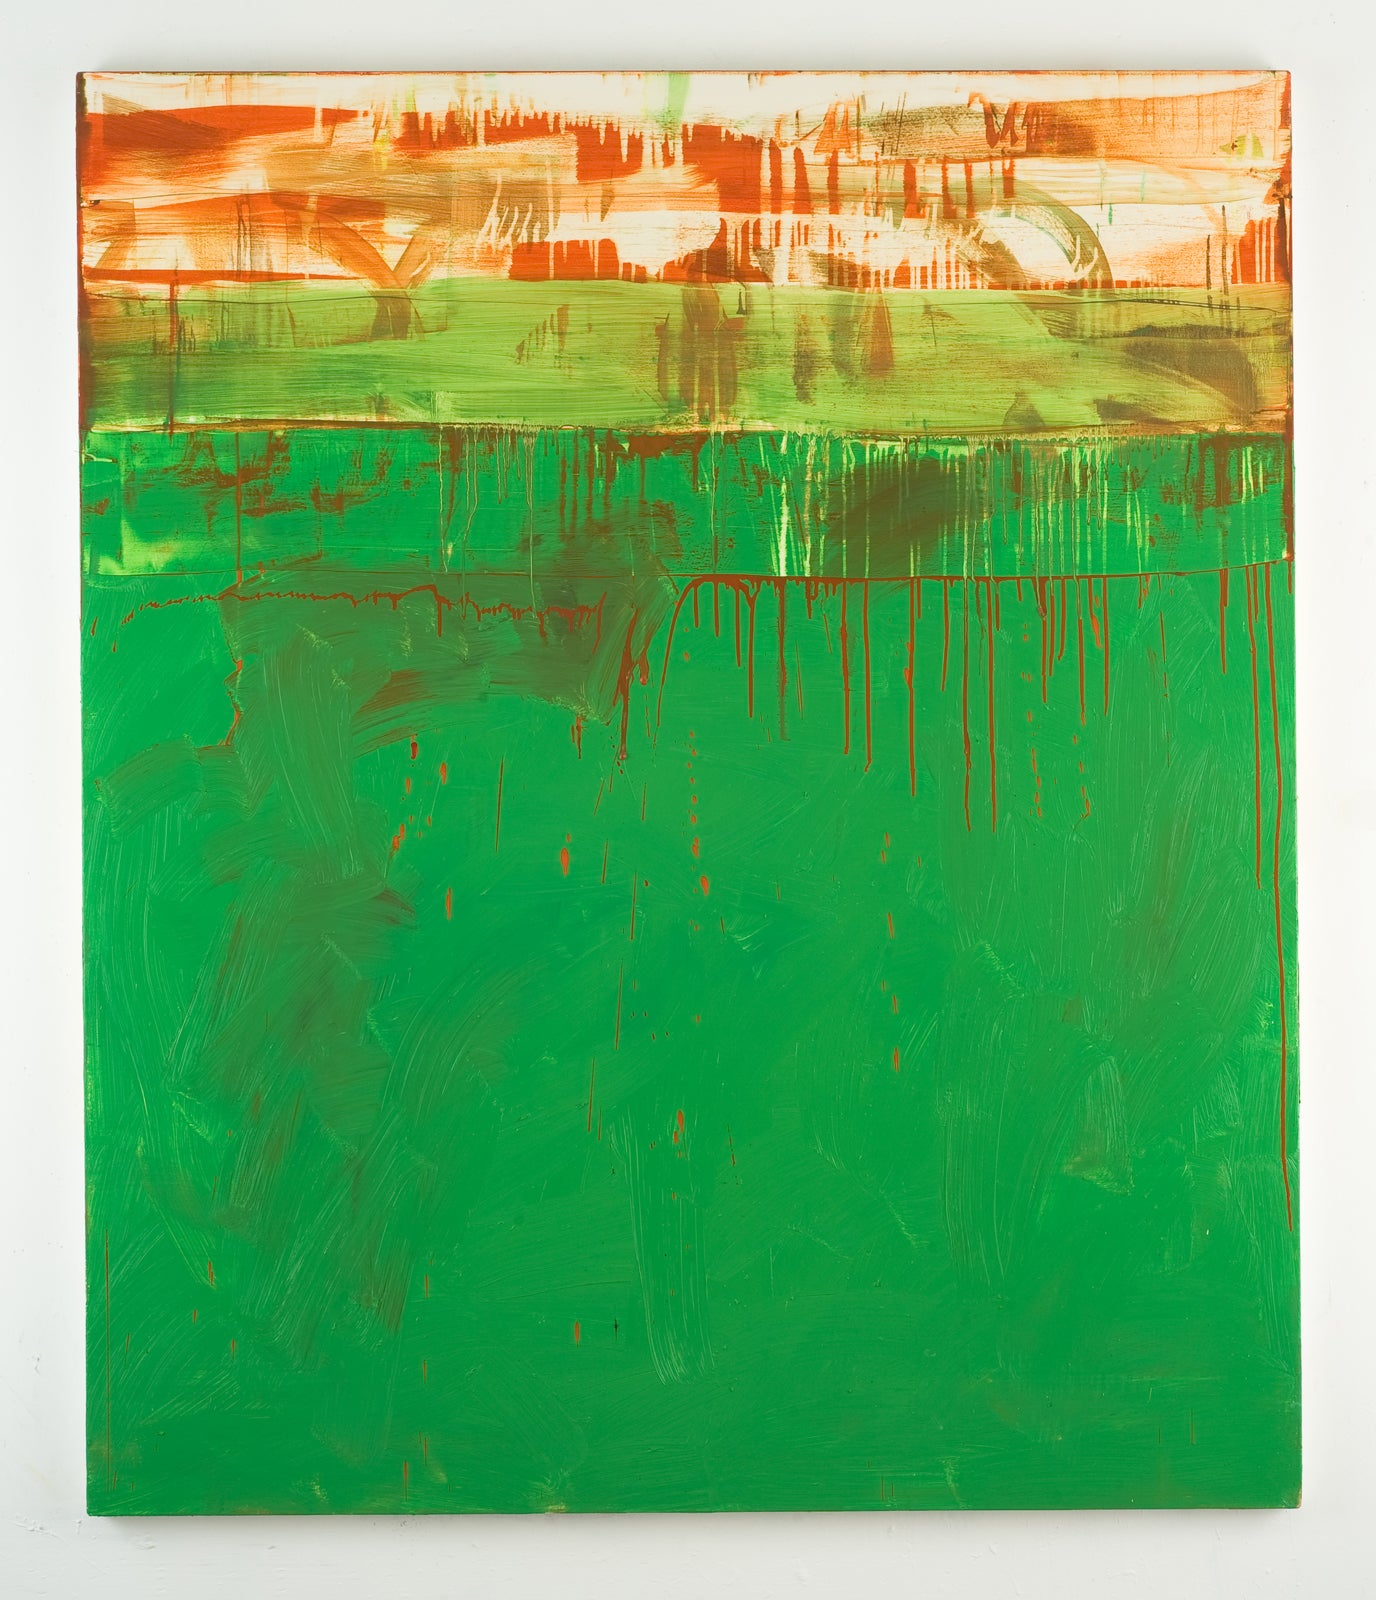 Shaan Syed, Untitled (Collapsed Monochrome Green), 2013